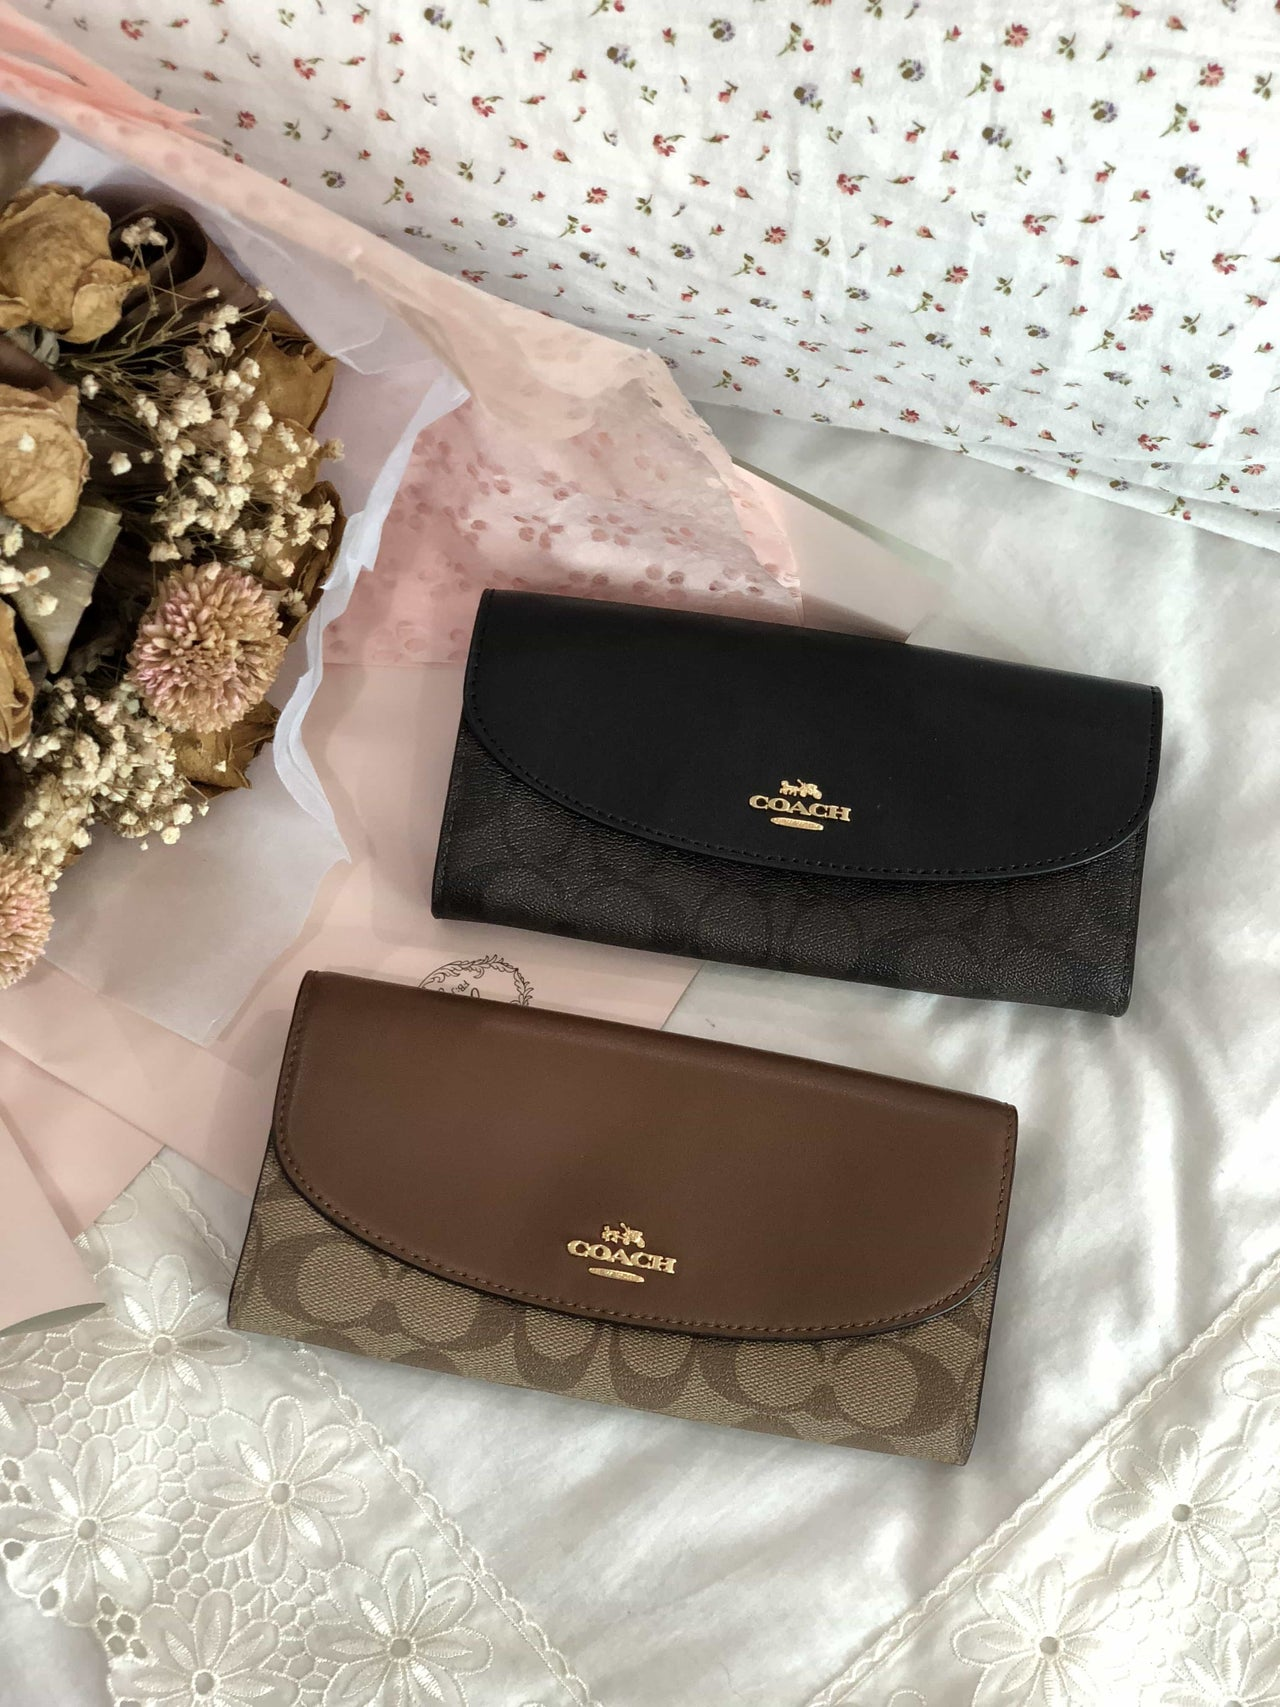 COACH SLIM ENVELOPE WALLET IN SIGNATURE - LovelyMadness Clothing Online Fashion Malaysia